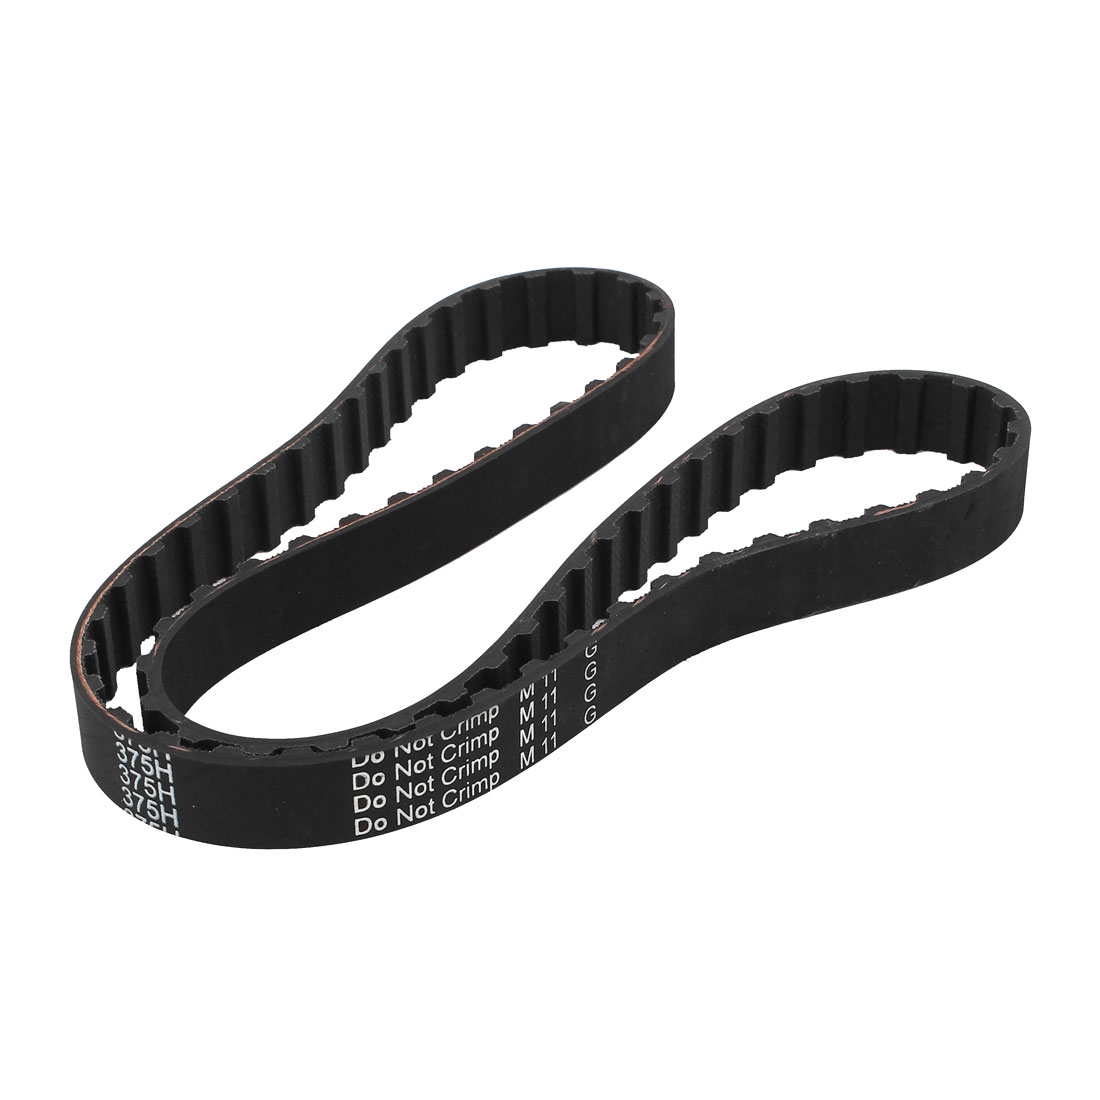 375H 075 19.1mm Width 12.7mm Pitch 75 Teeth CNC Timing Belt for Stepper Motor